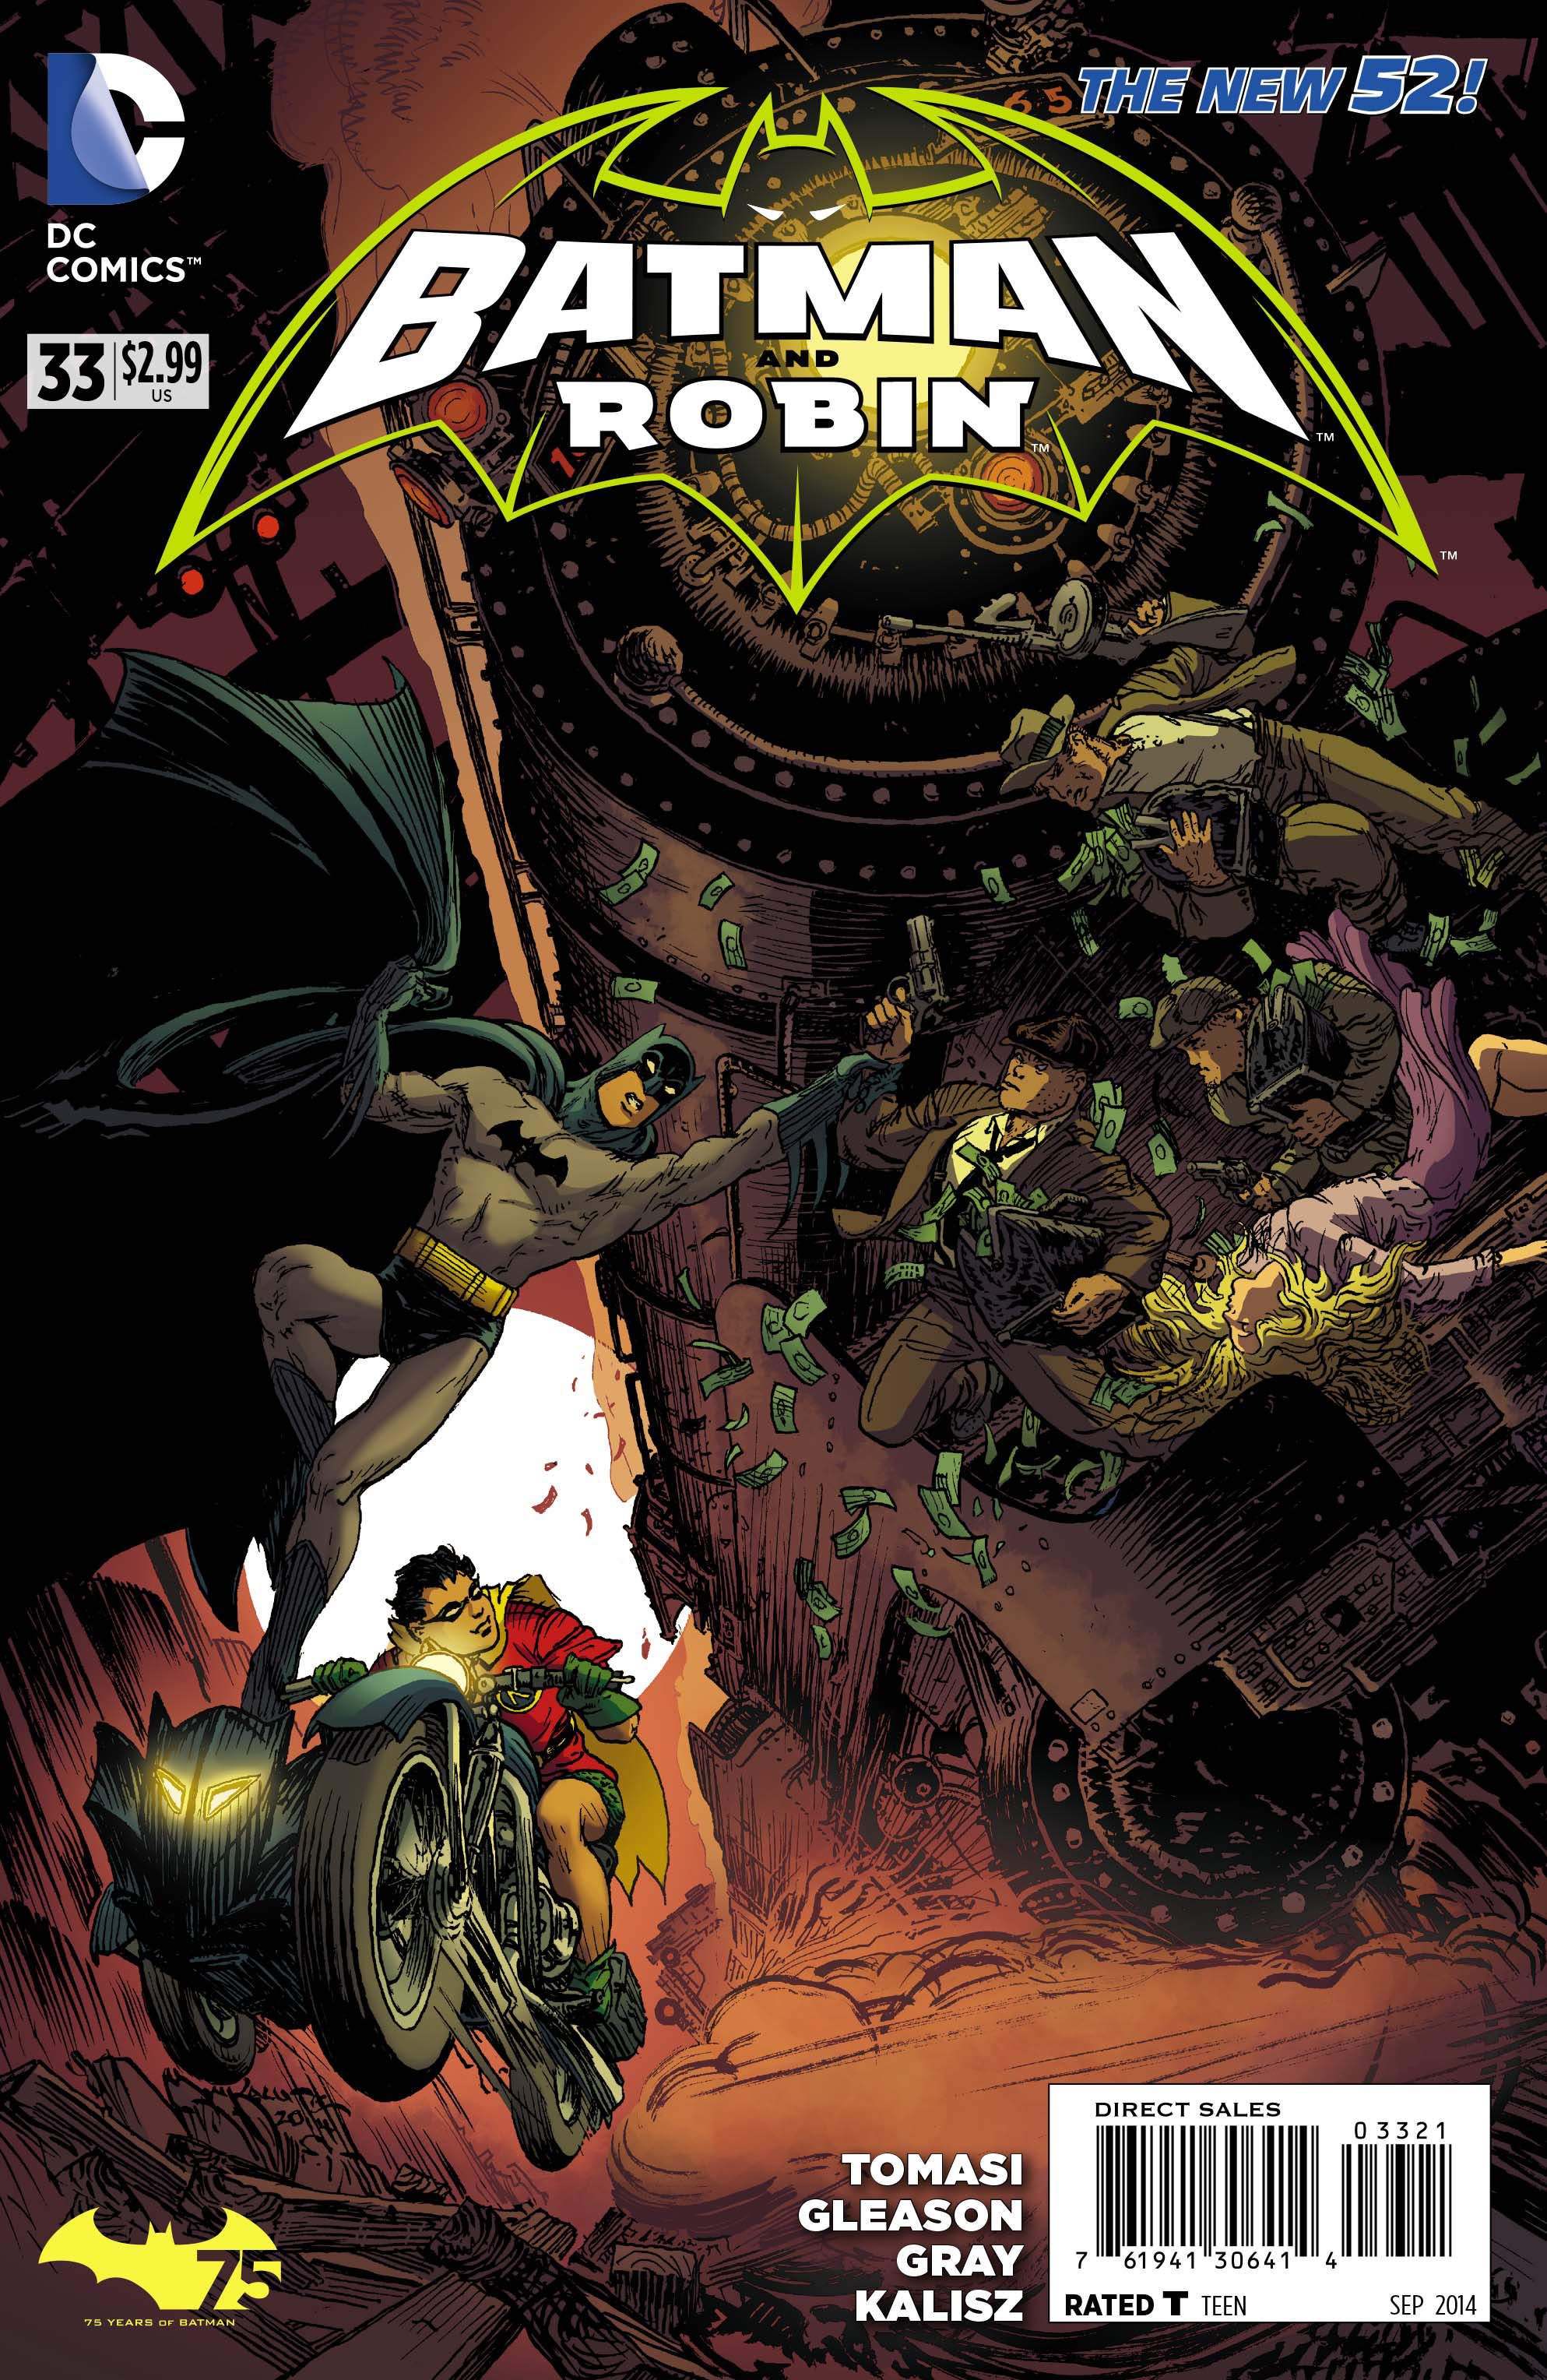 BATMAN AND ROBIN #33 BATMAN 75 VAR ED